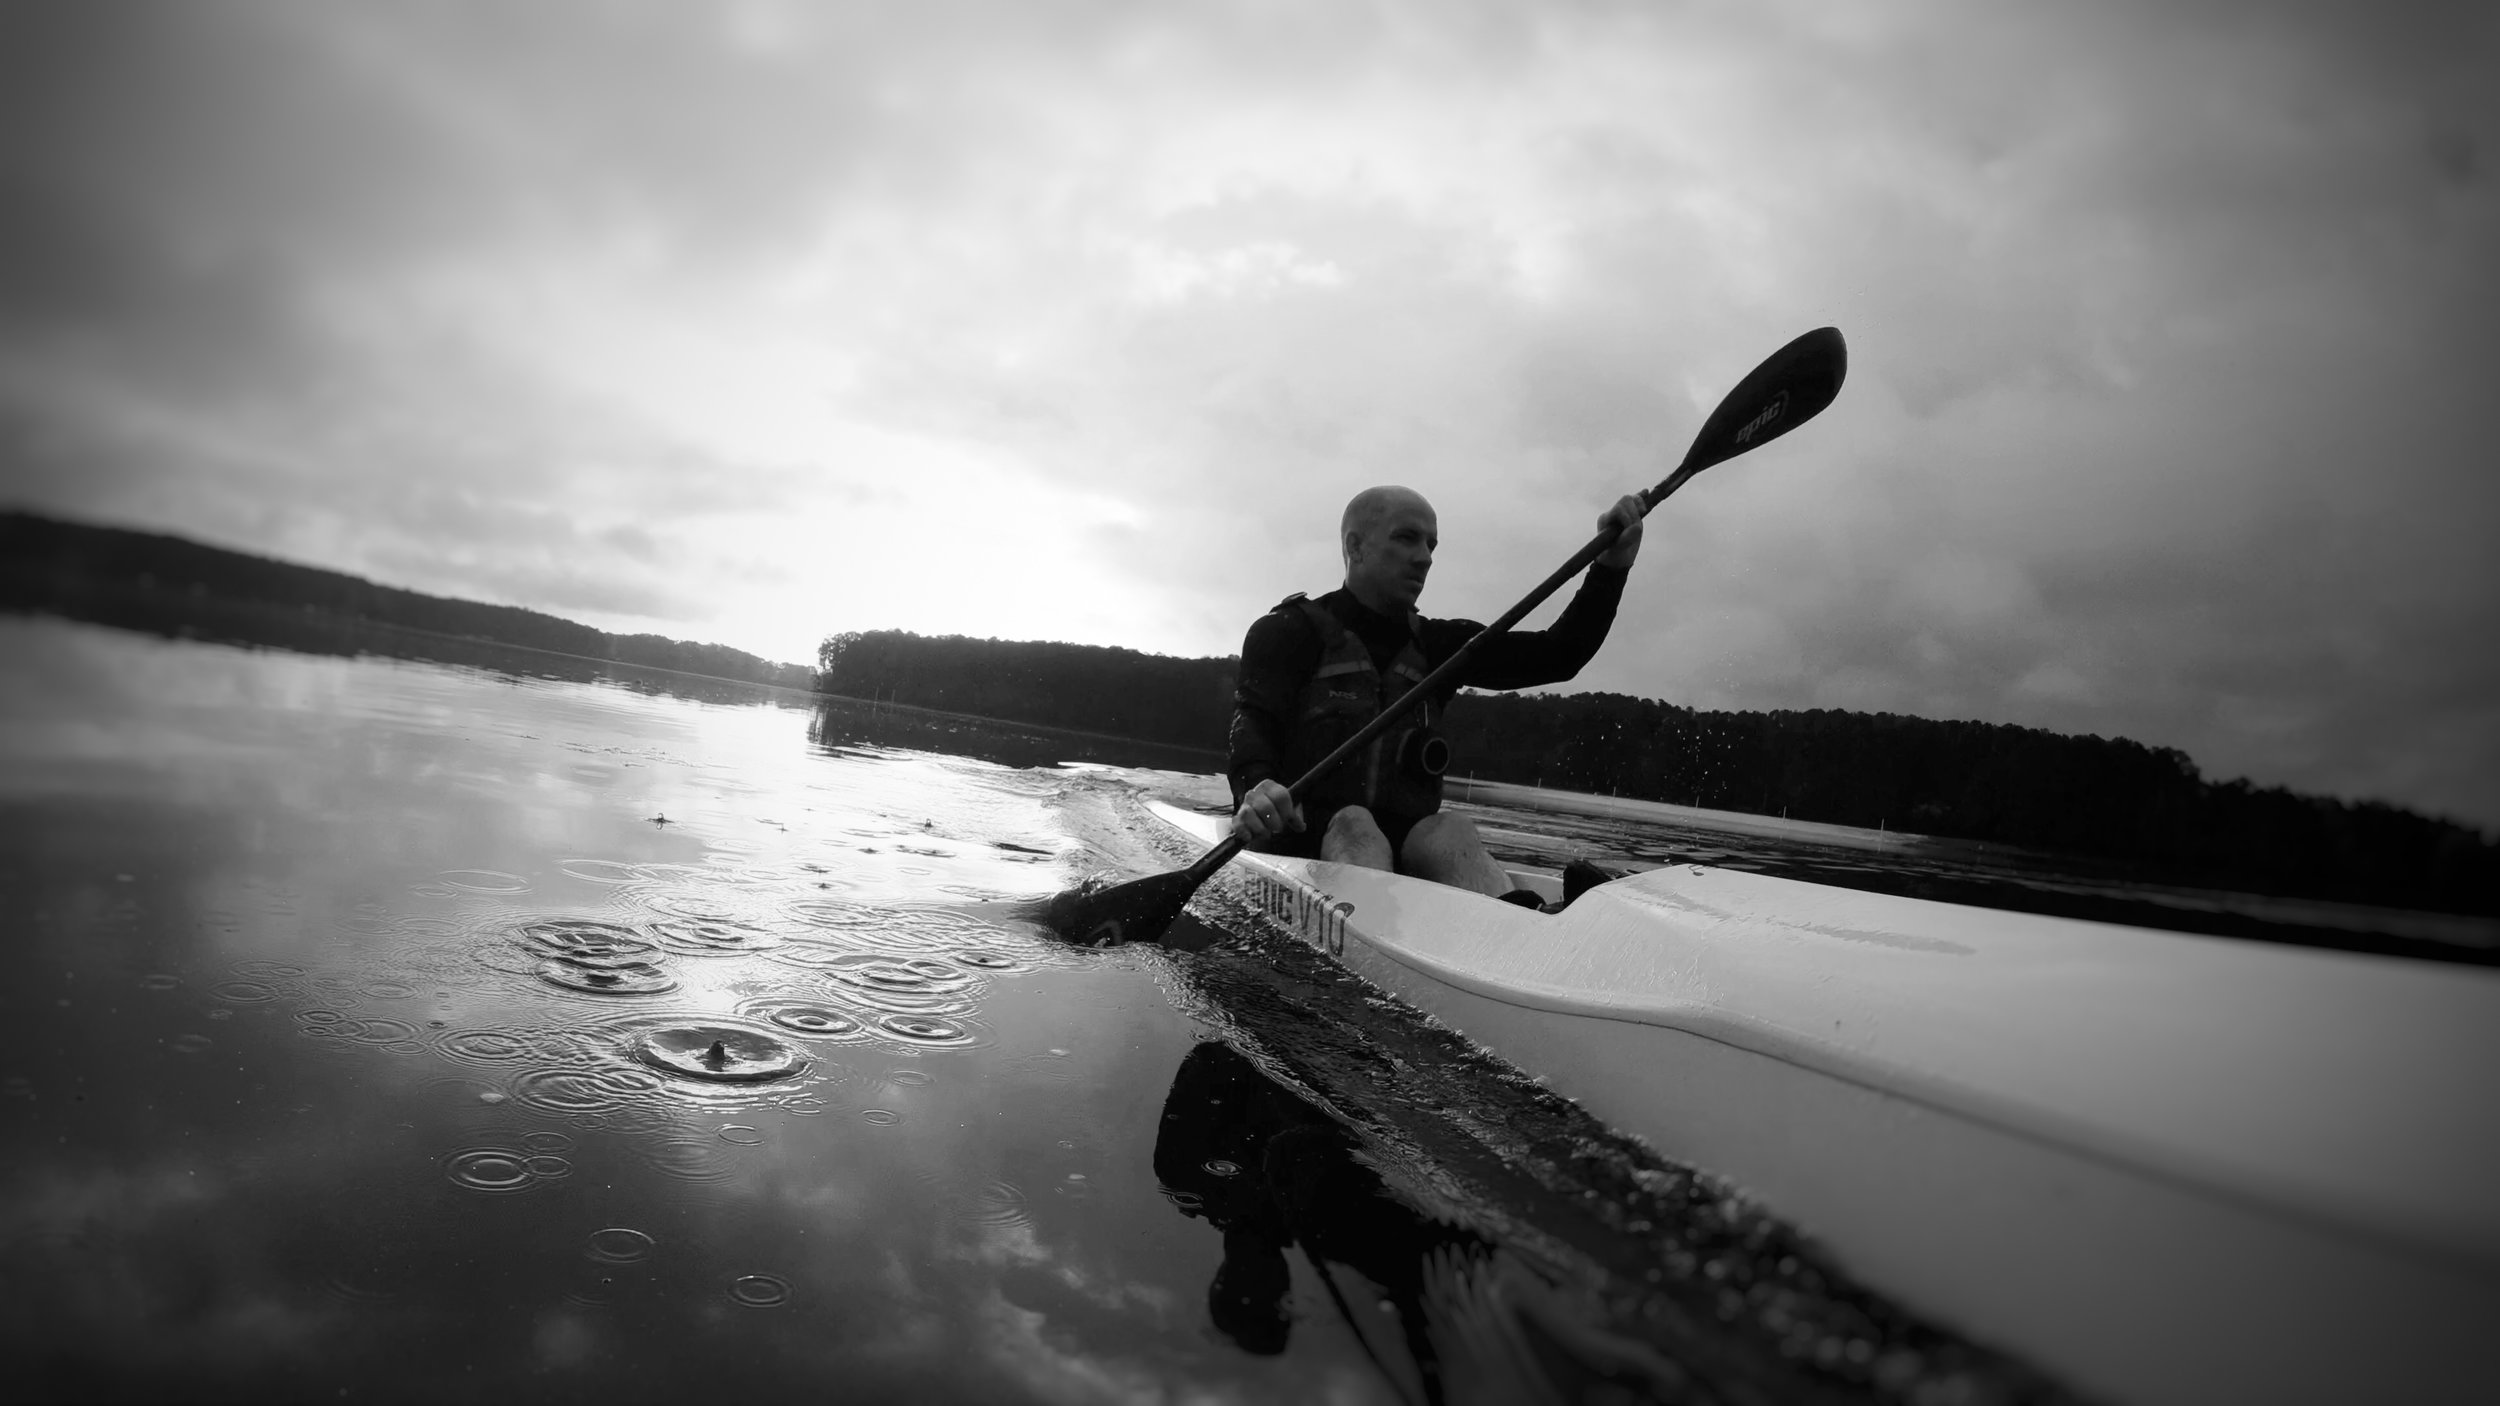 Training session in my  Epic V10 Surfski  with  Full Carbon ProGrip Series Wing Paddle